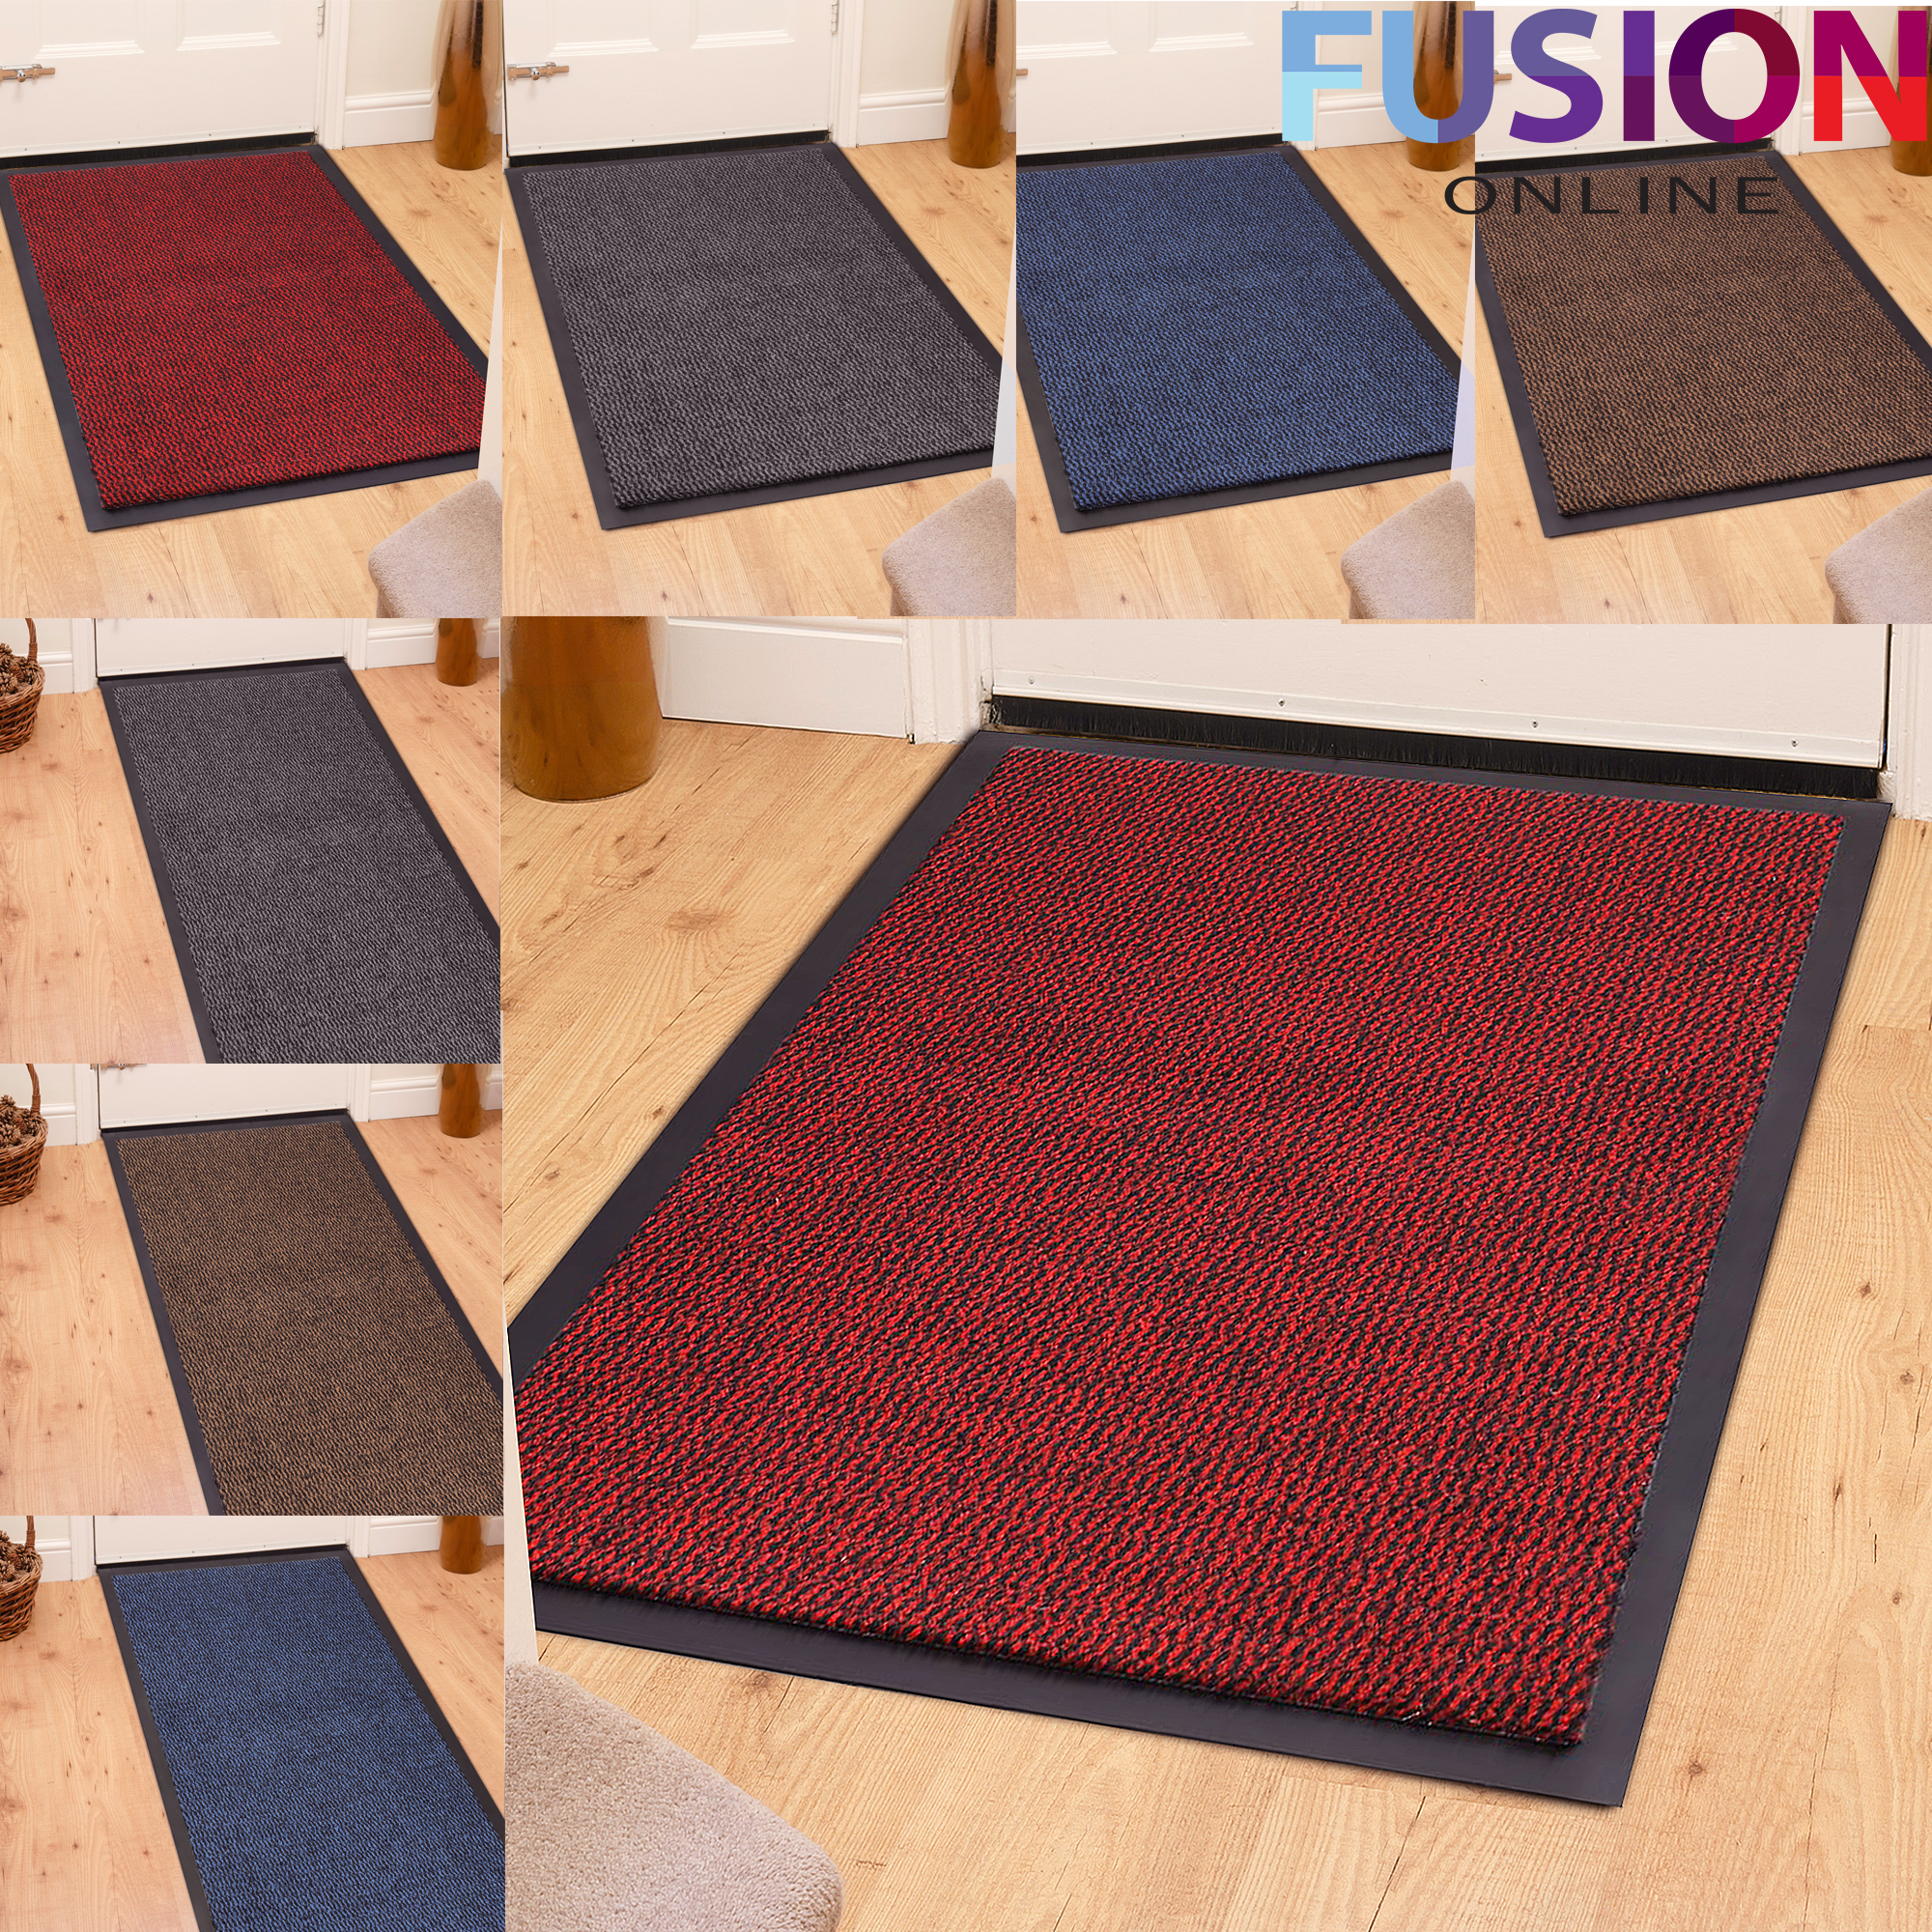 Heavy duty non slip rubber barrier mat large small rugs for Small rugs for kitchen